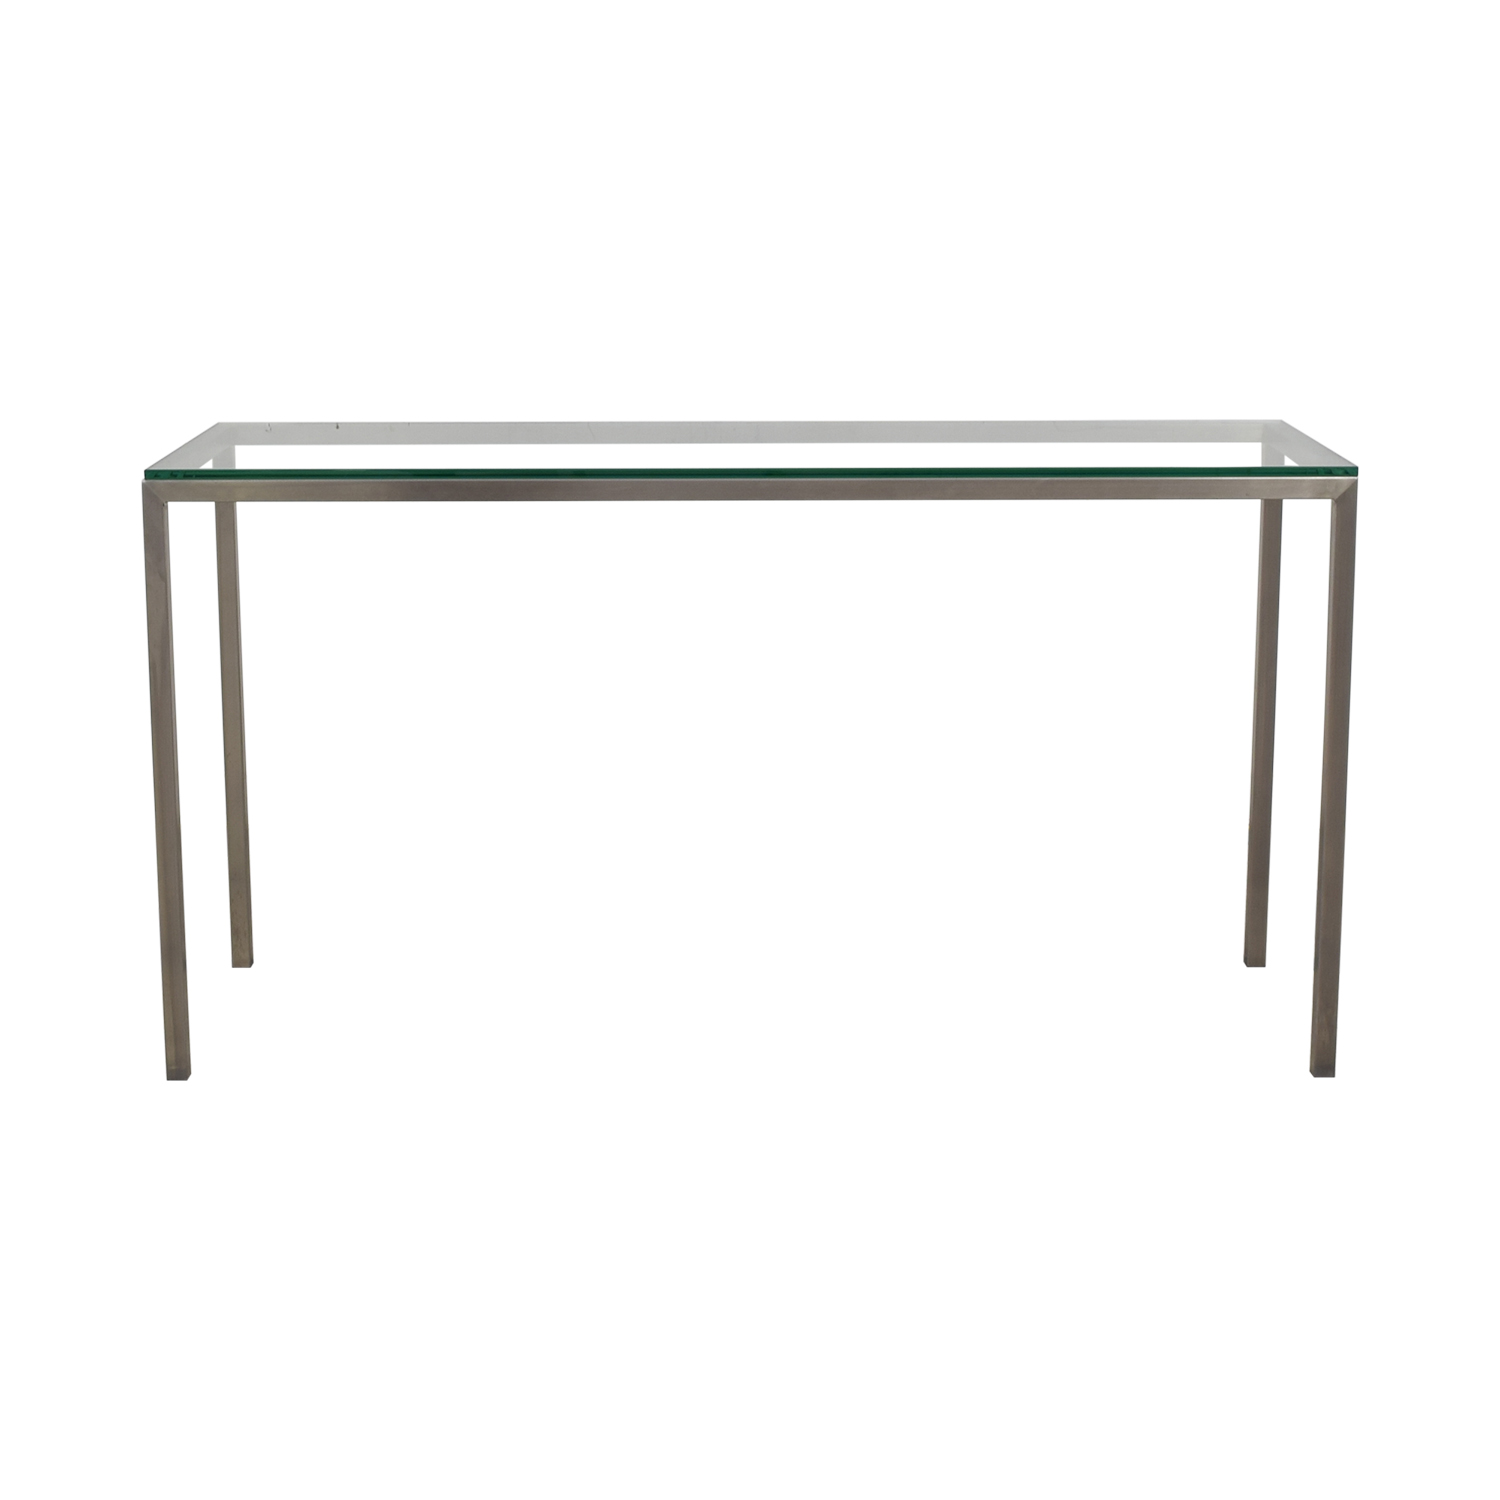 Room & Board Room & Board Portica Console Table coupon